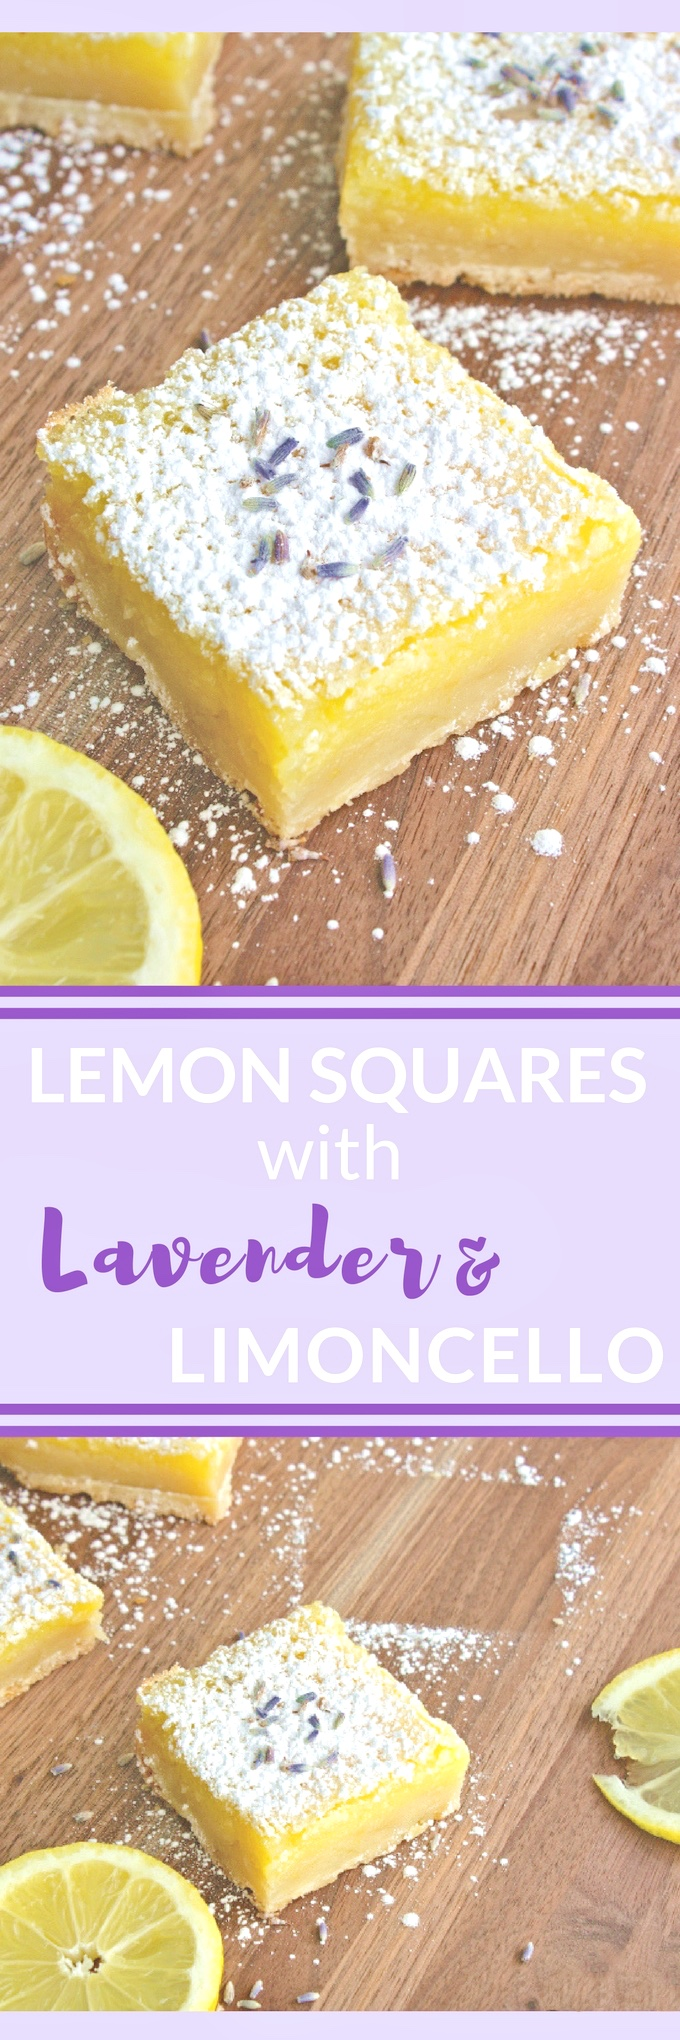 Lemon Squares with Lavender & Limoncello are bright and tasty treats. You'll love thees Lemon Squares with Lavender & Limoncello for a special dessert.